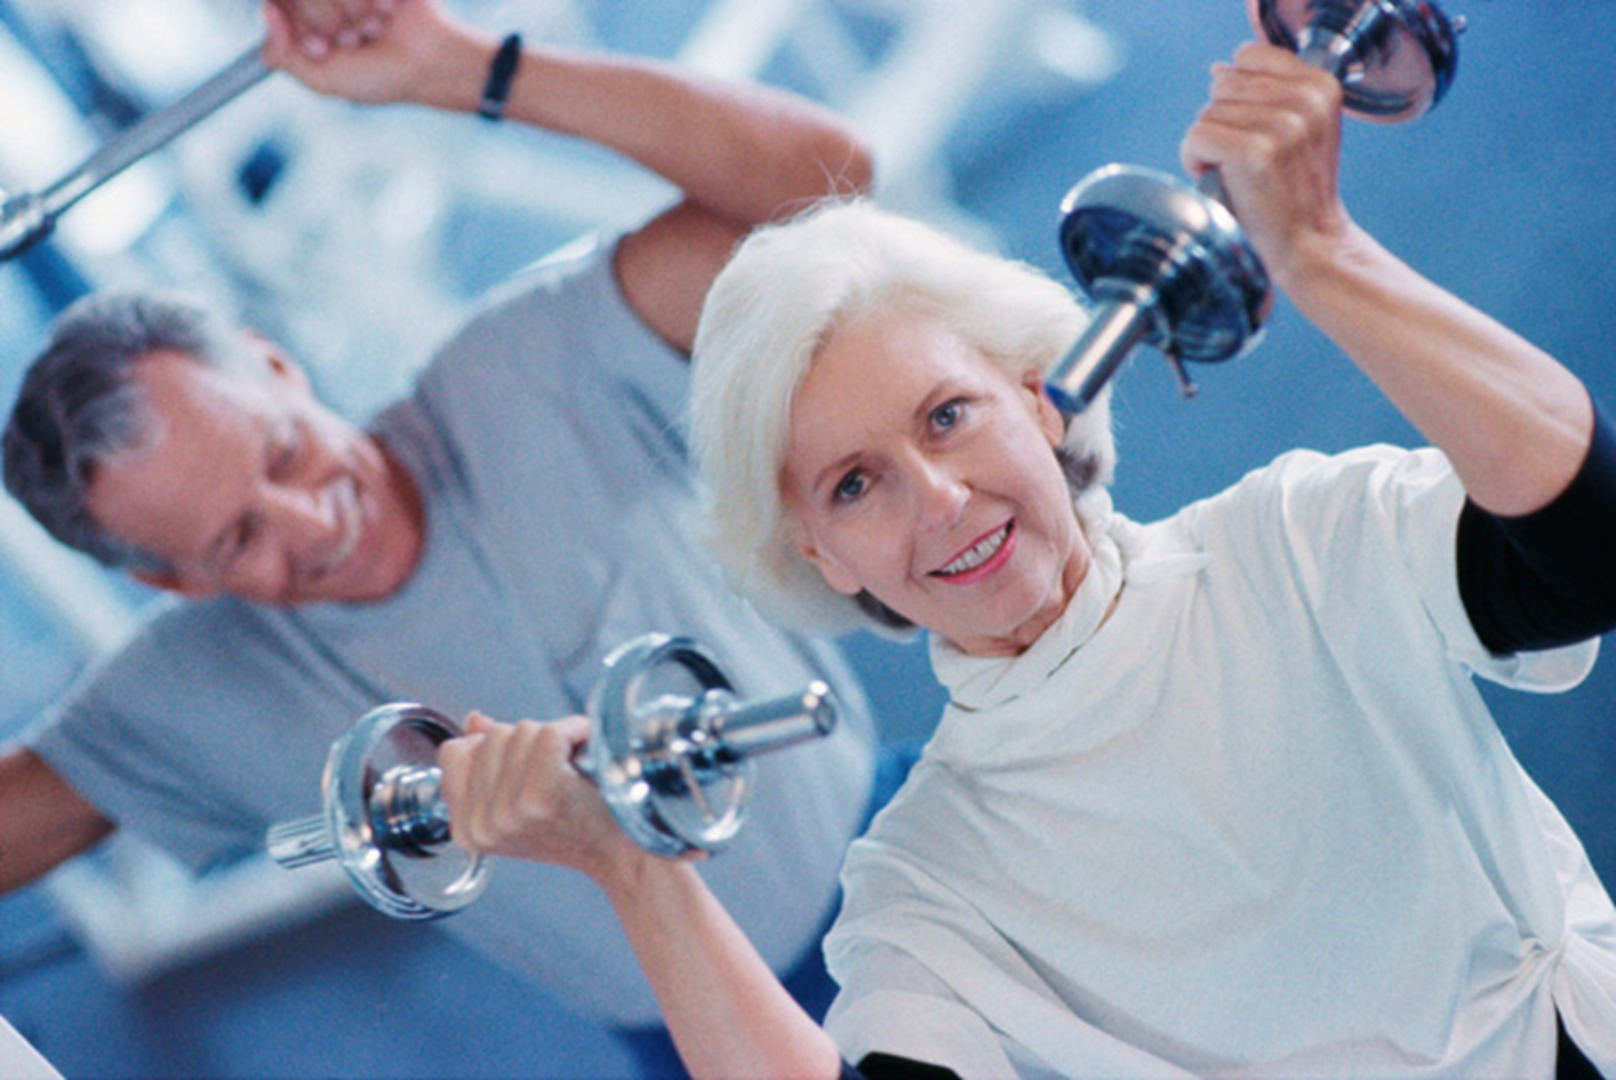 featured jobs healthcare leaders executive recruitment physical therapist